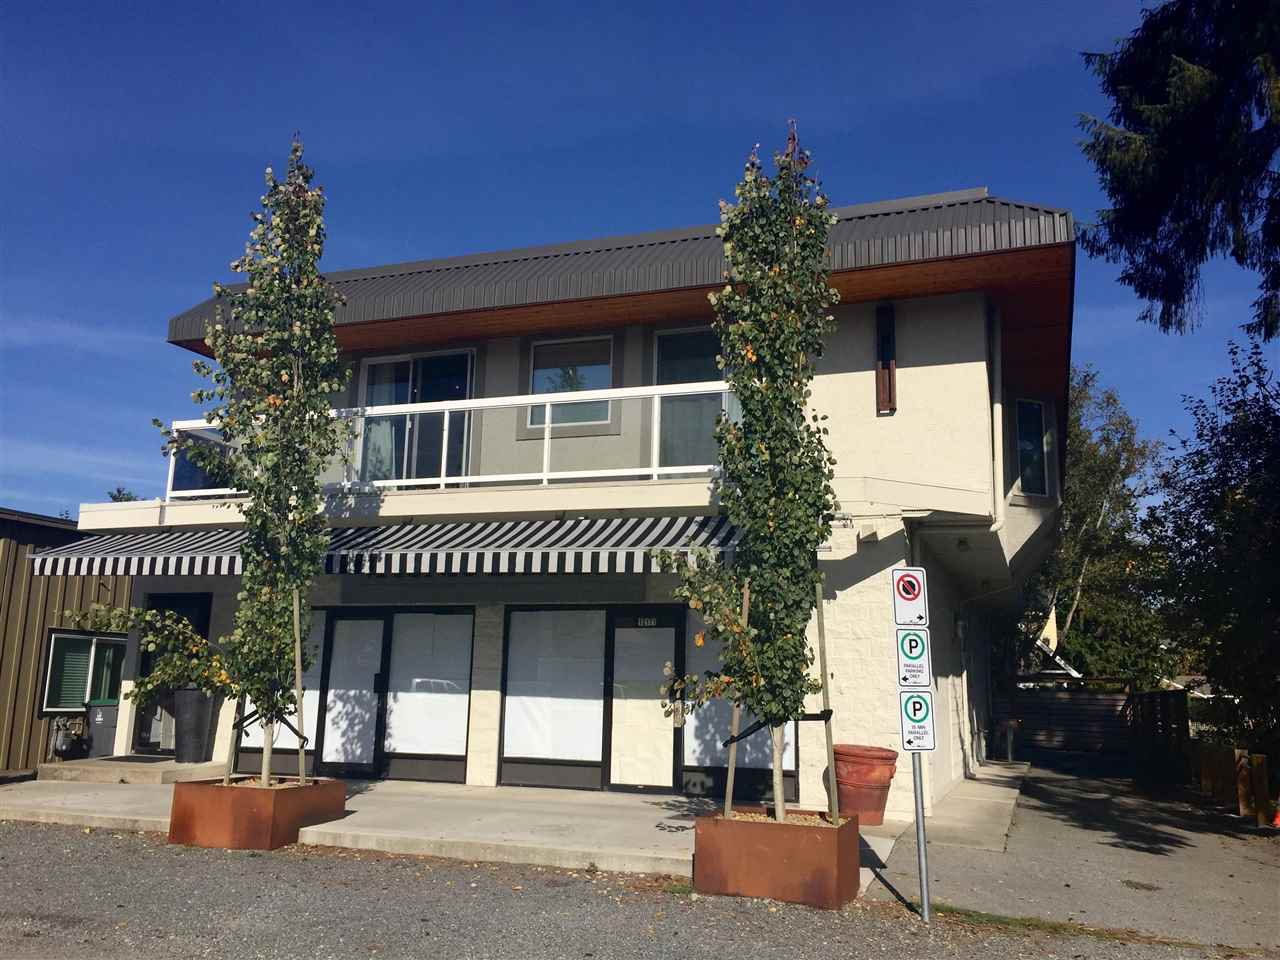 Main Photo: 12171 SULLIVAN Street in Surrey: Crescent Bch Ocean Pk. Retail for sale (South Surrey White Rock)  : MLS®# C8007715